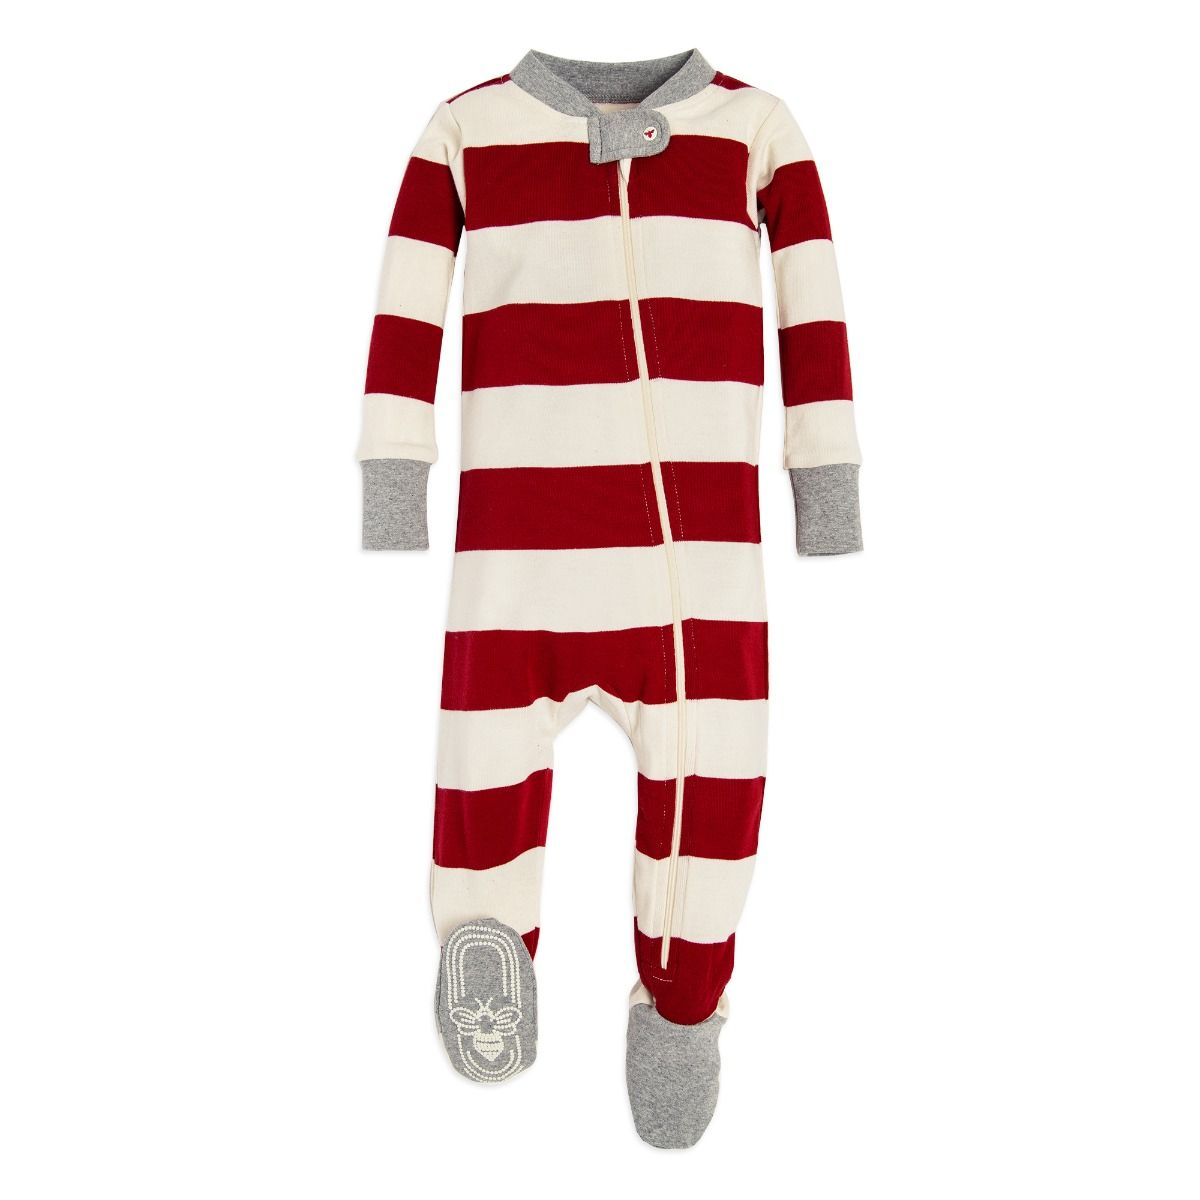 3dd1f3942 Rugby Stripe Organic Baby Holiday Matching Zip Up Footed Pajamas ...